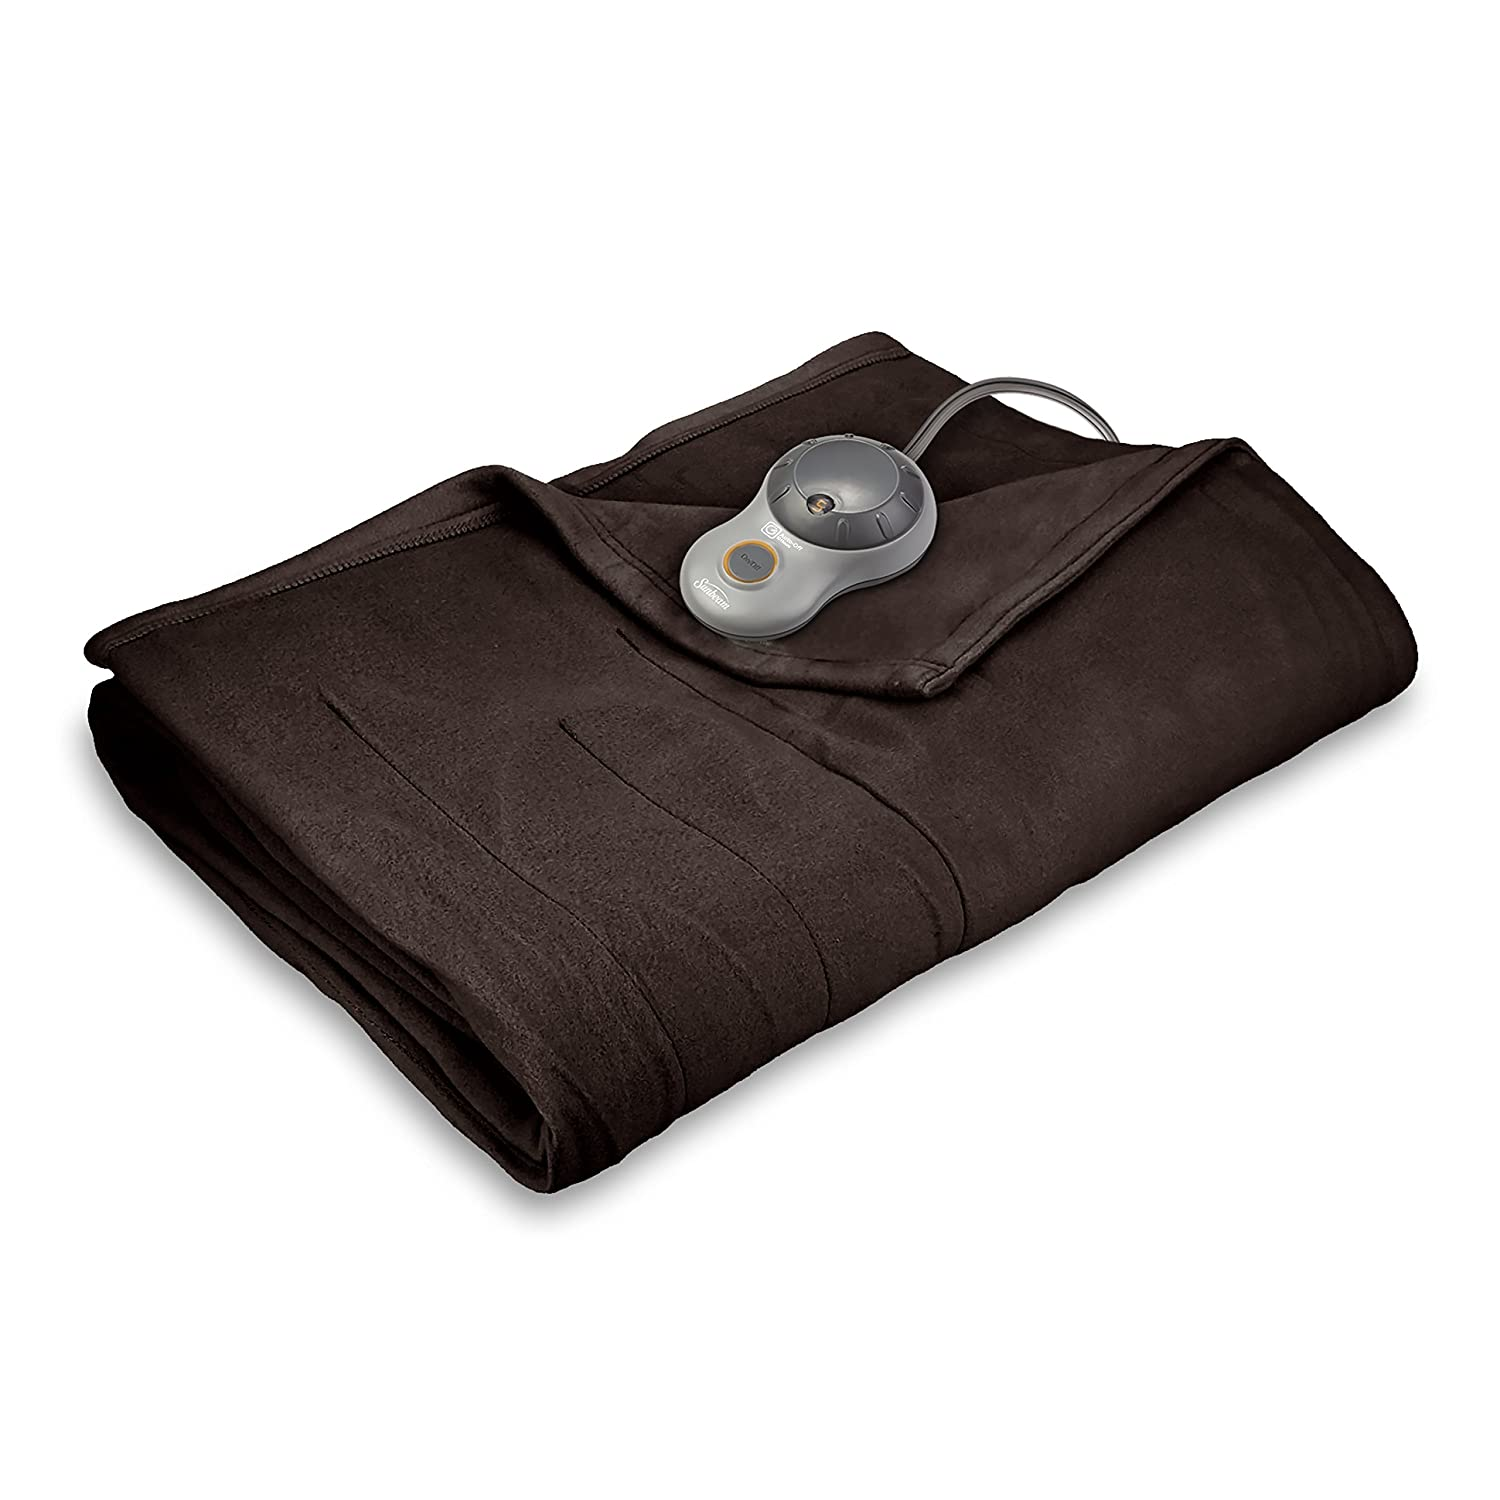 Sunbeam Heated Blanket | 10 Heat Settings, Quilted Fleece, Walnut, Twin - BSF9GTS-R470-13A00